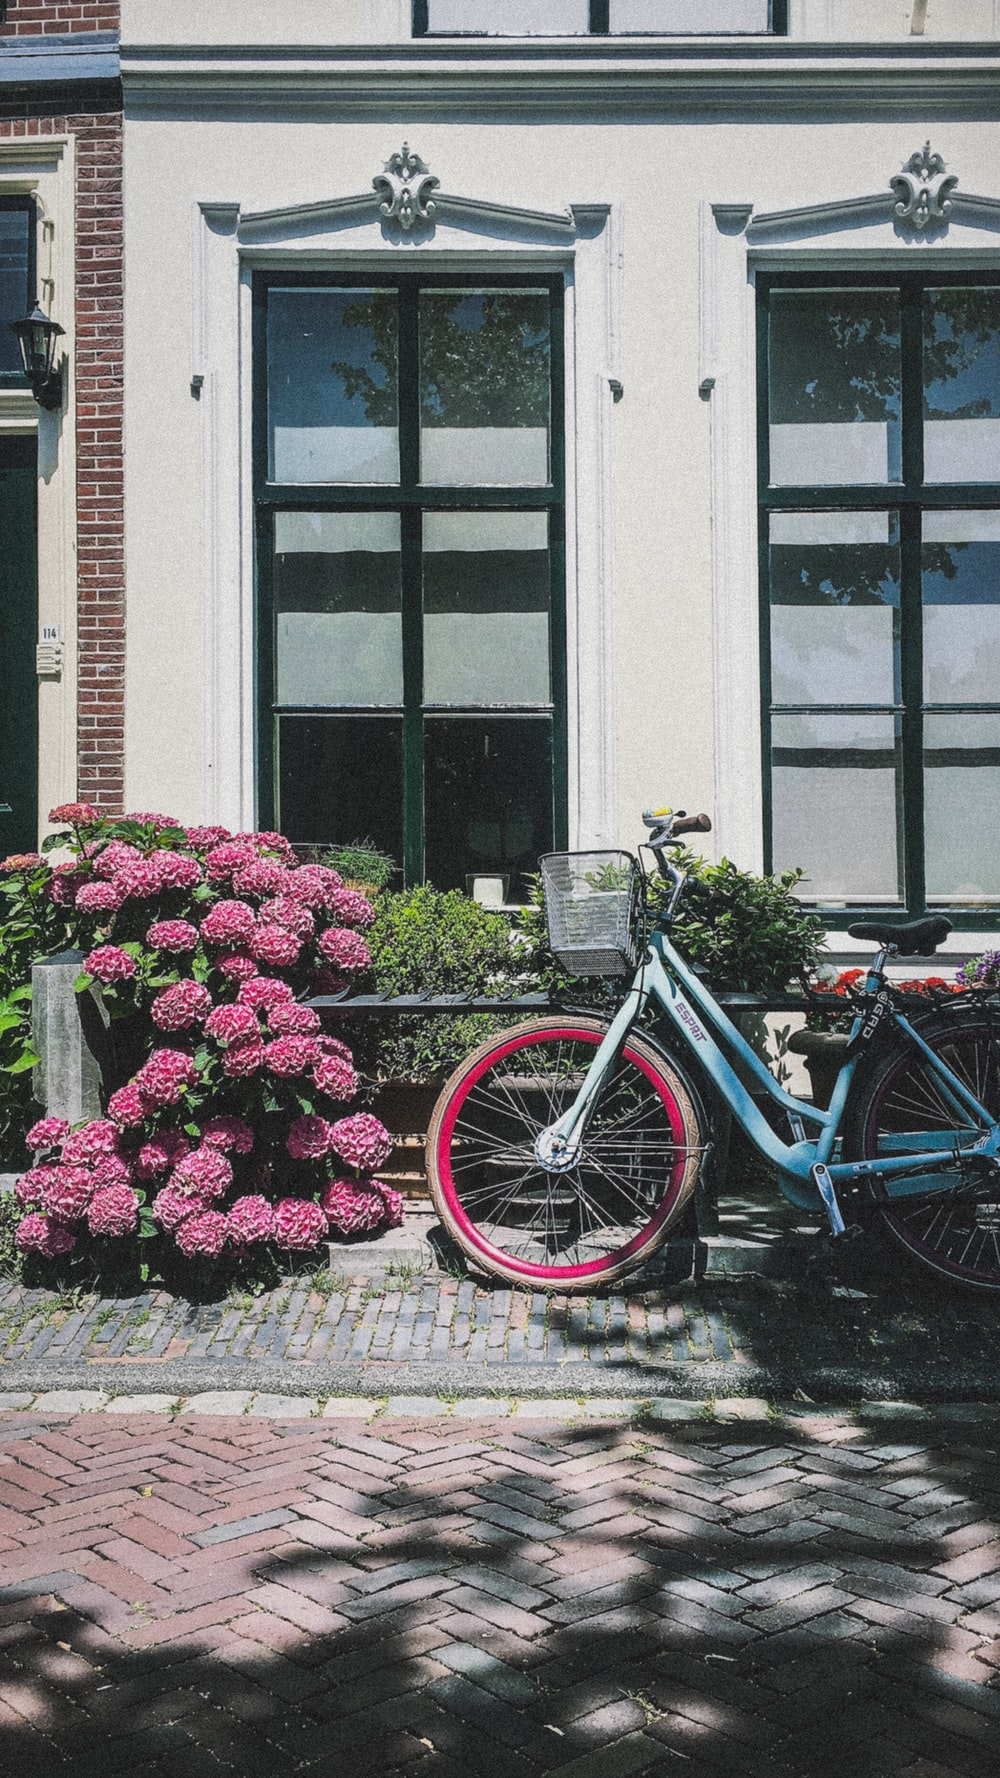 blue city bike parked beside pink flowers